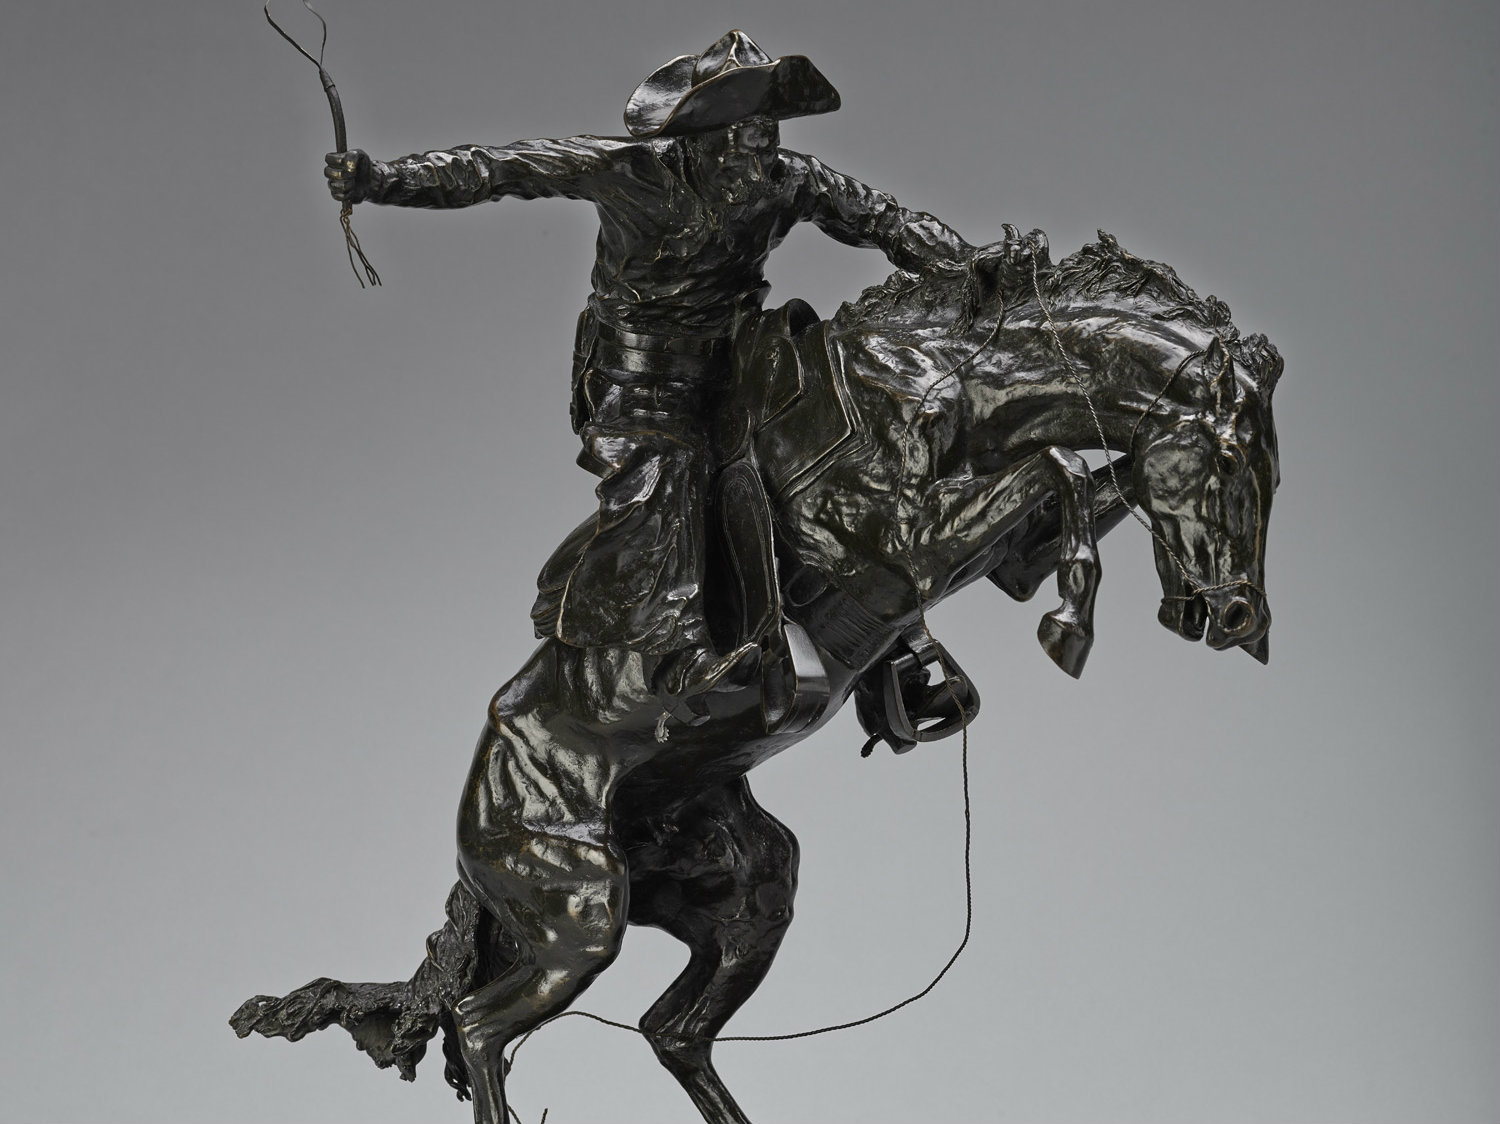 Photo: The Broncho Buster by Frederic Remington